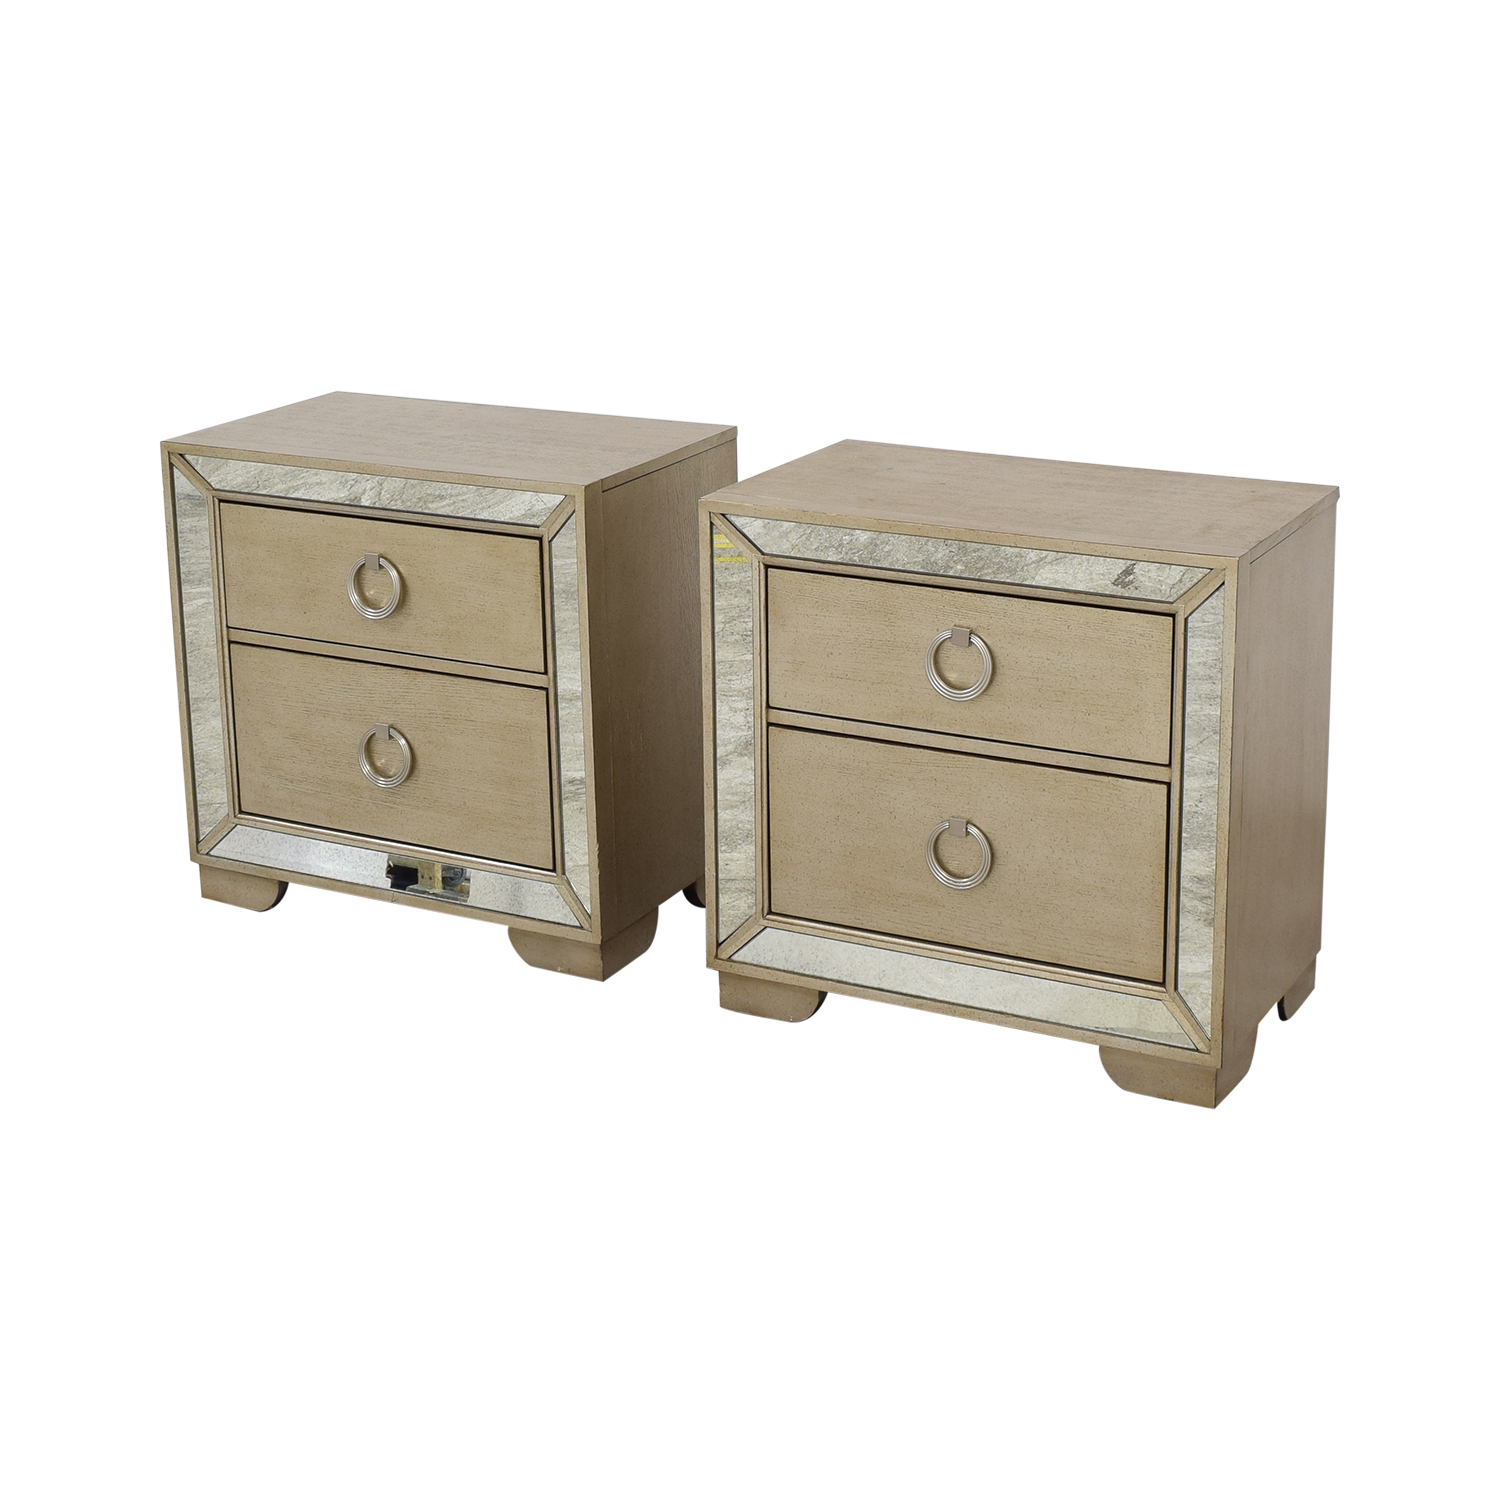 Macy's Macy's Ailey Nightstands on sale